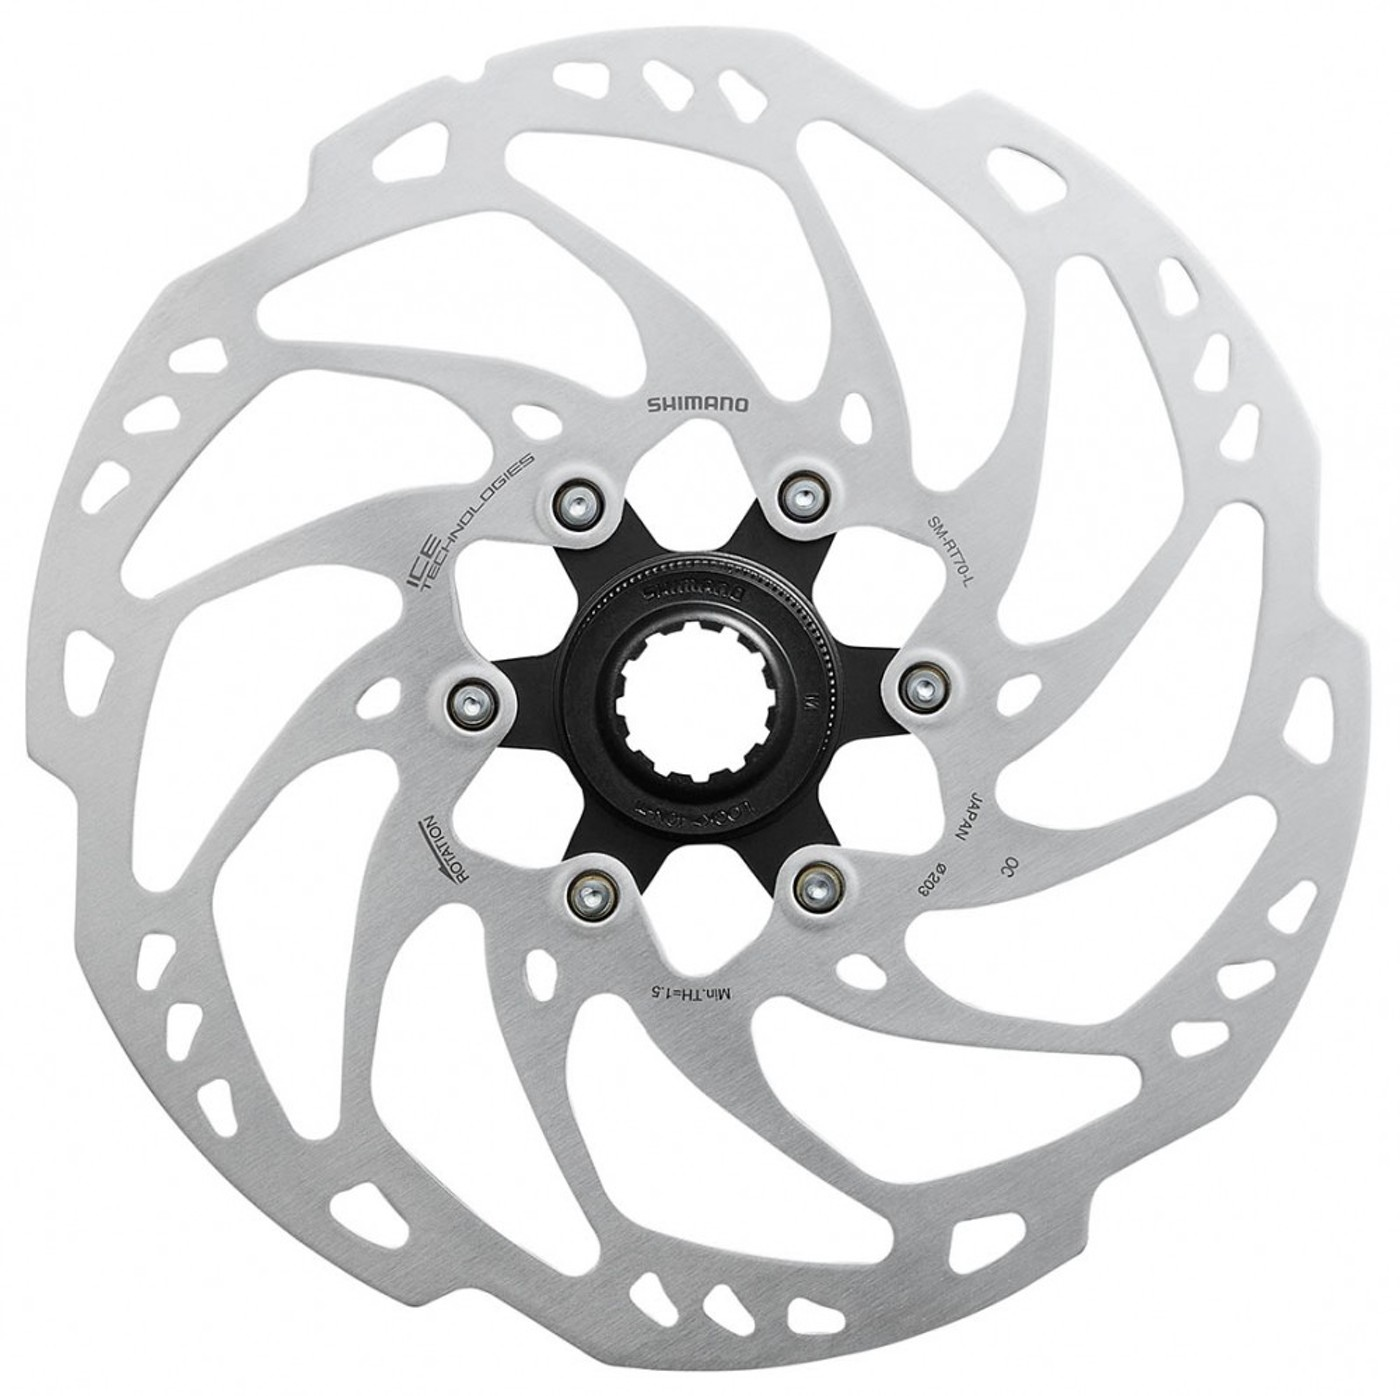 SHIMANO Rotor SMRT70 160mm CL